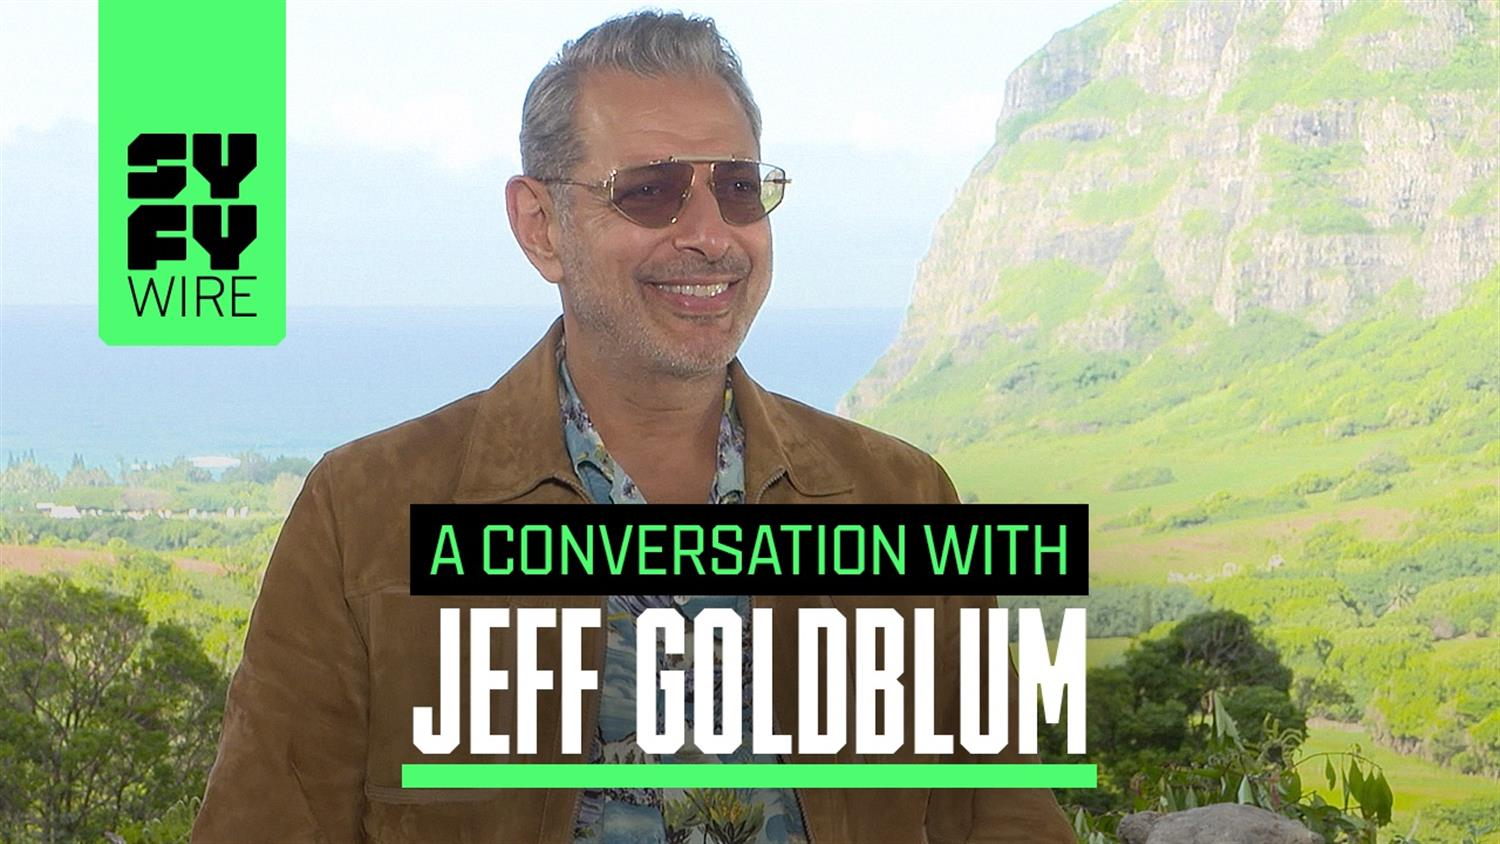 Jeff Goldblum Sings And Might Crash Our Wedding